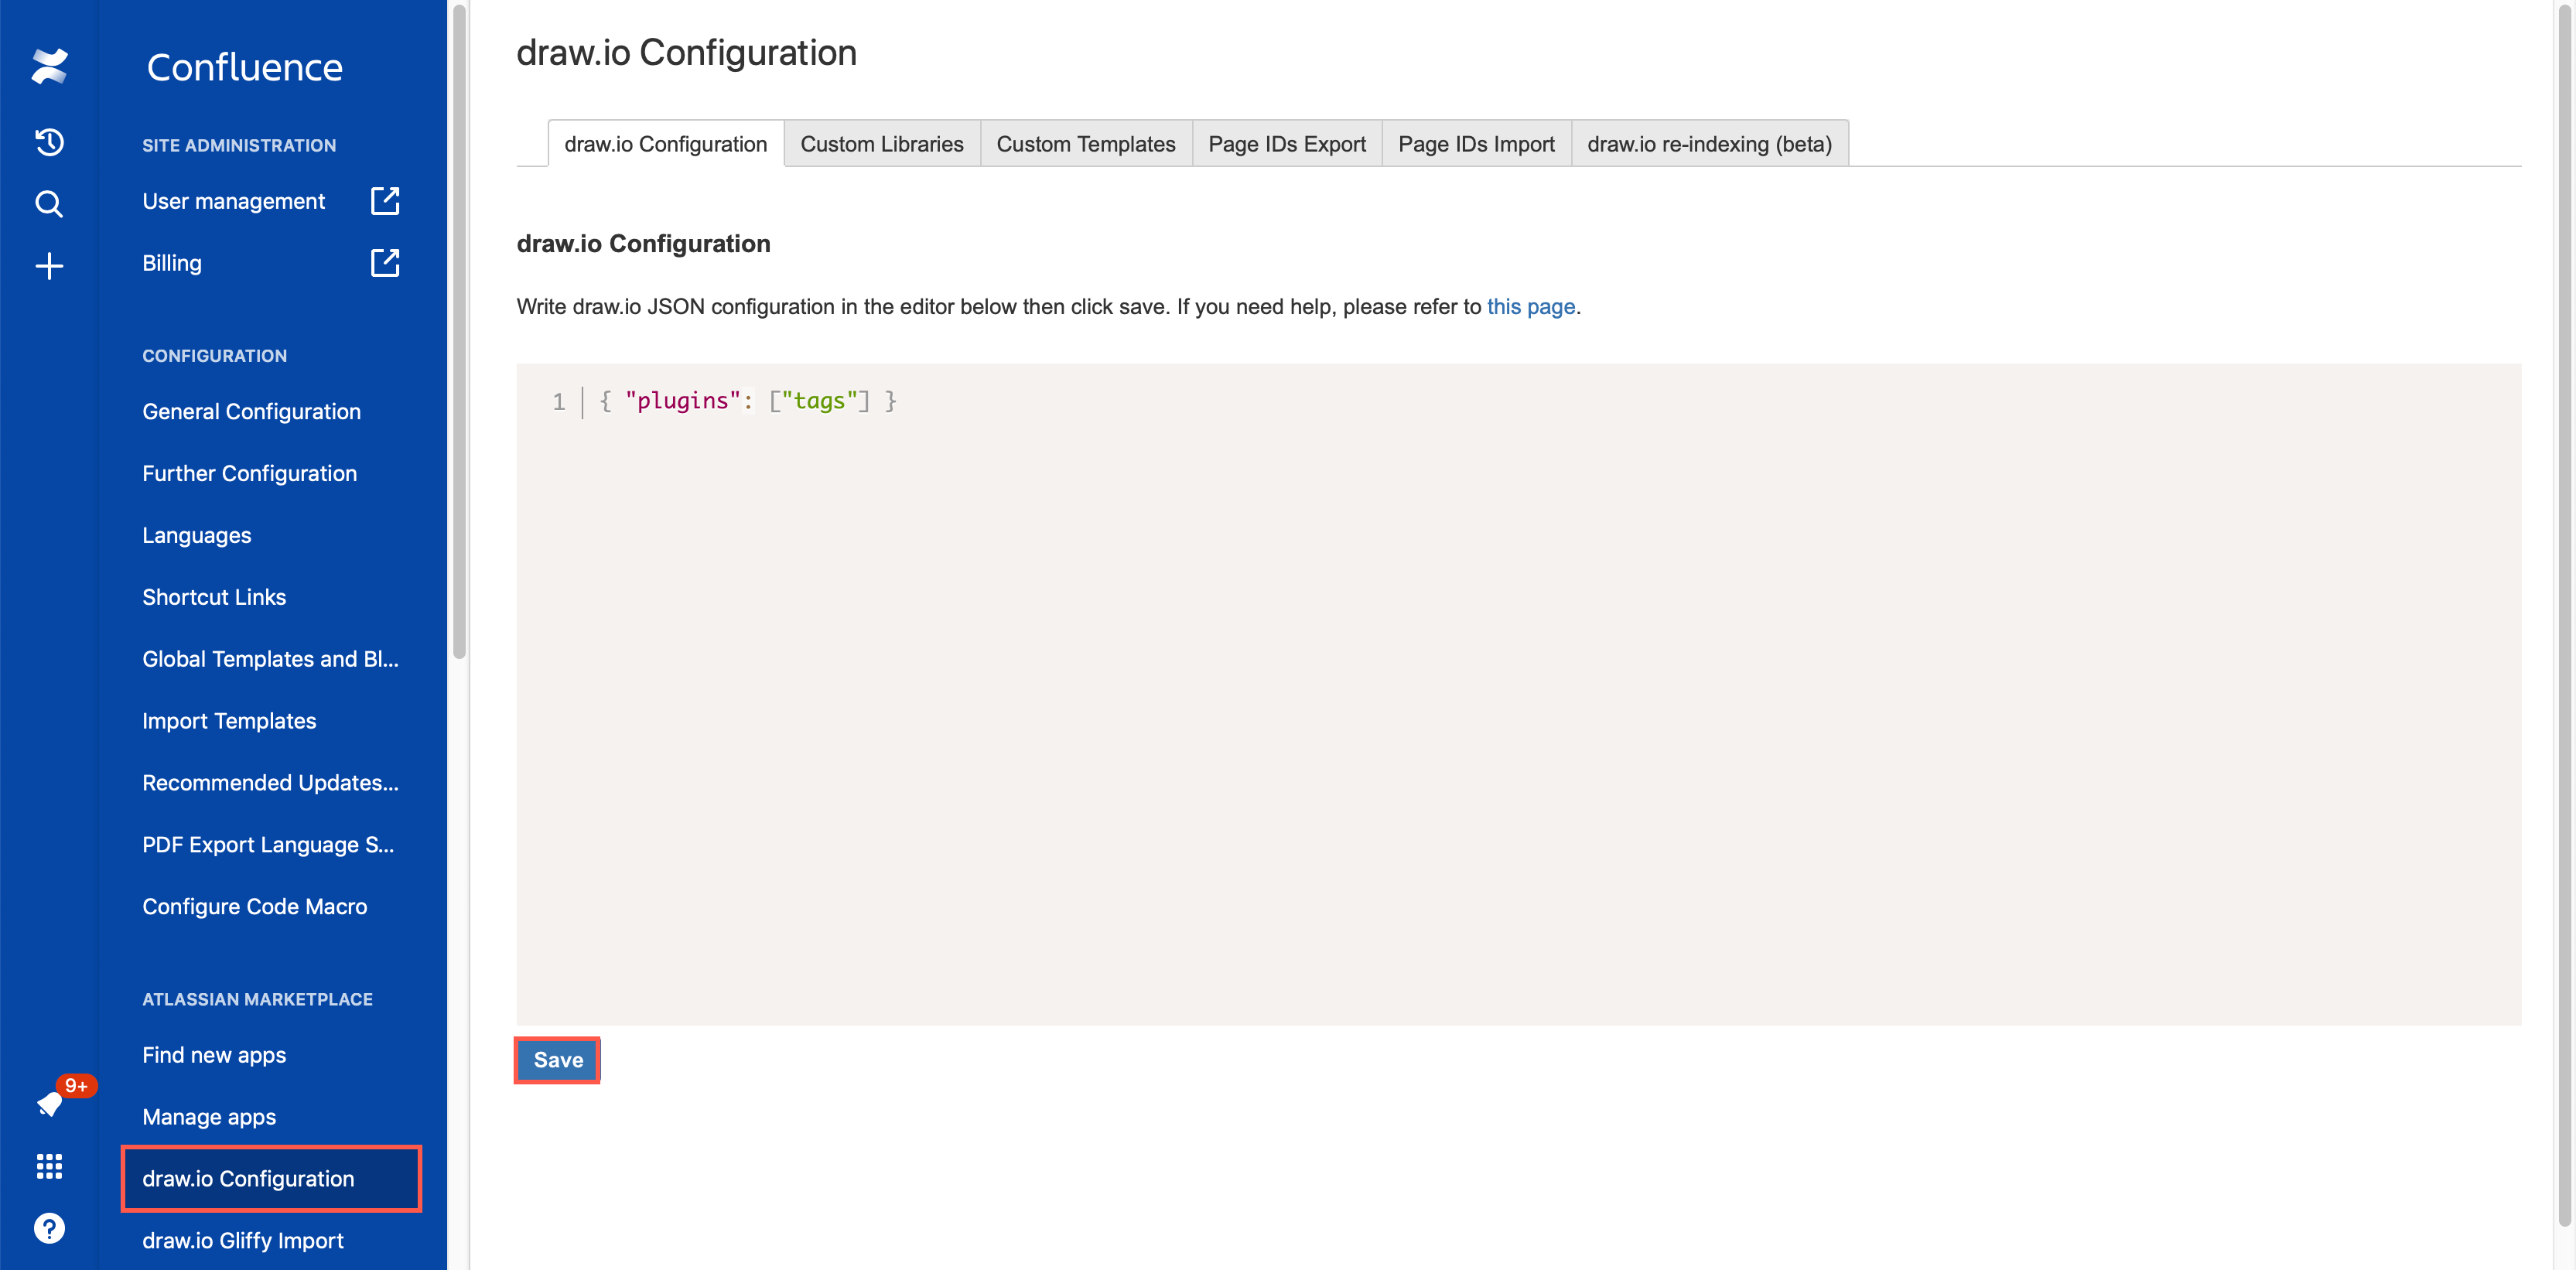 Add the tags plugin to draw.io in Confluence Cloud